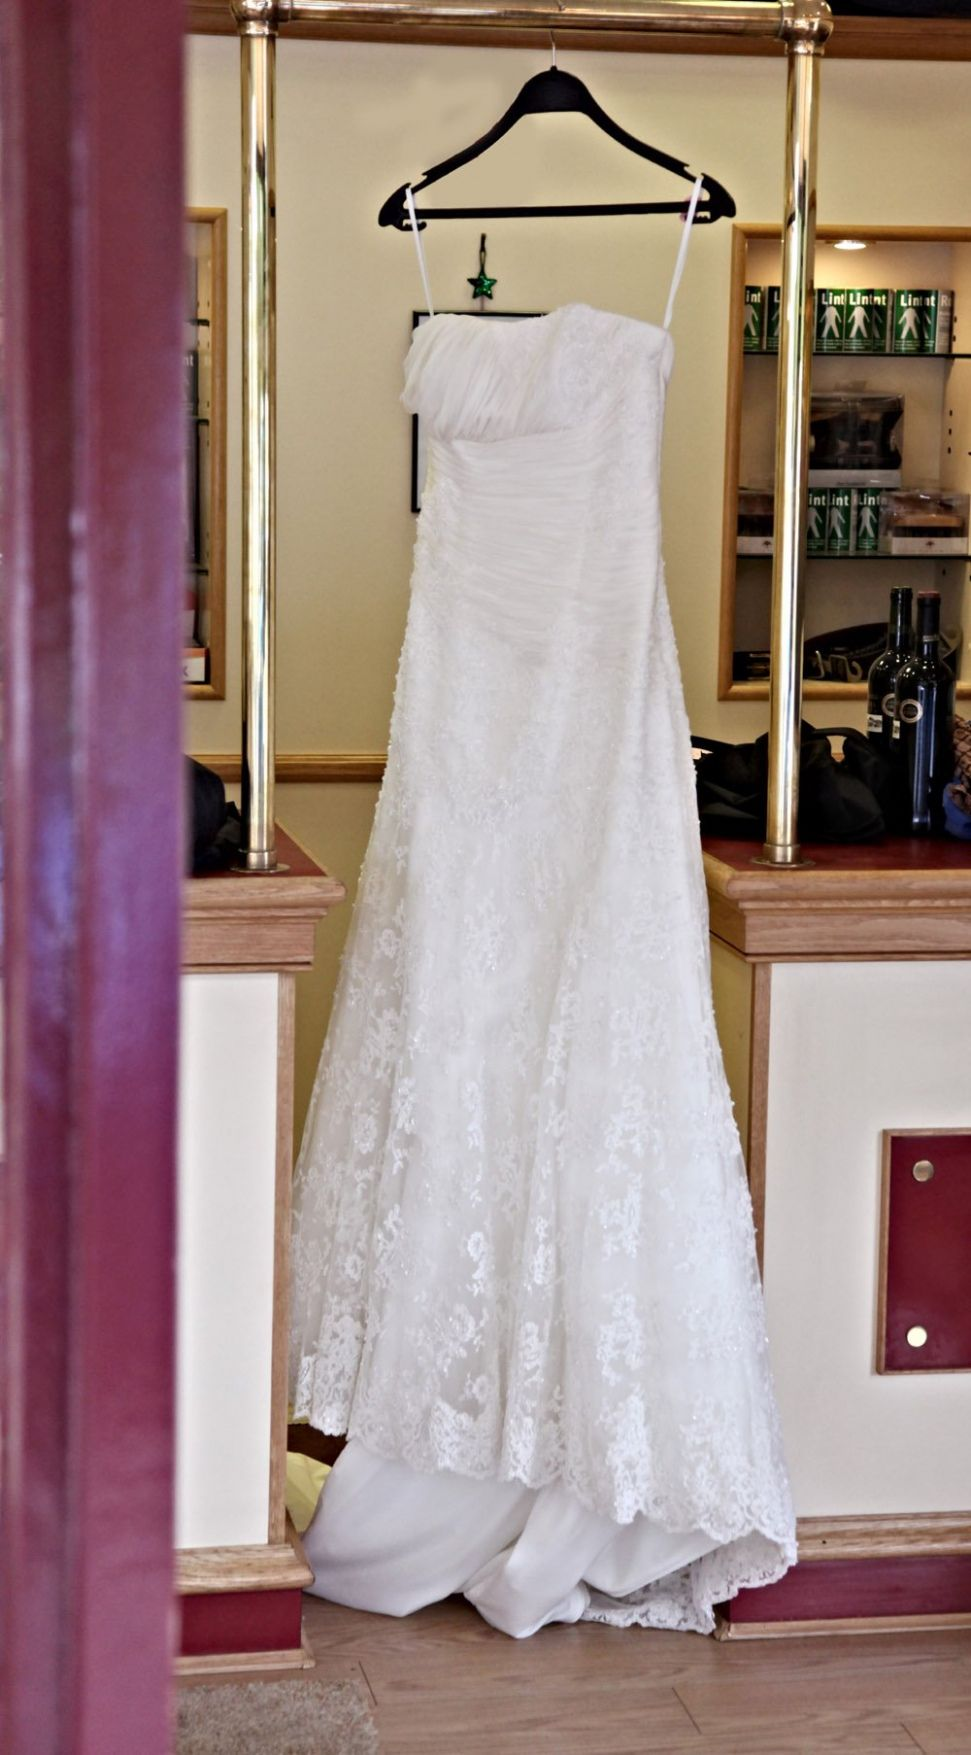 Pin by joanahairwedding on wedding ideas for you | Pinterest | Dry ...